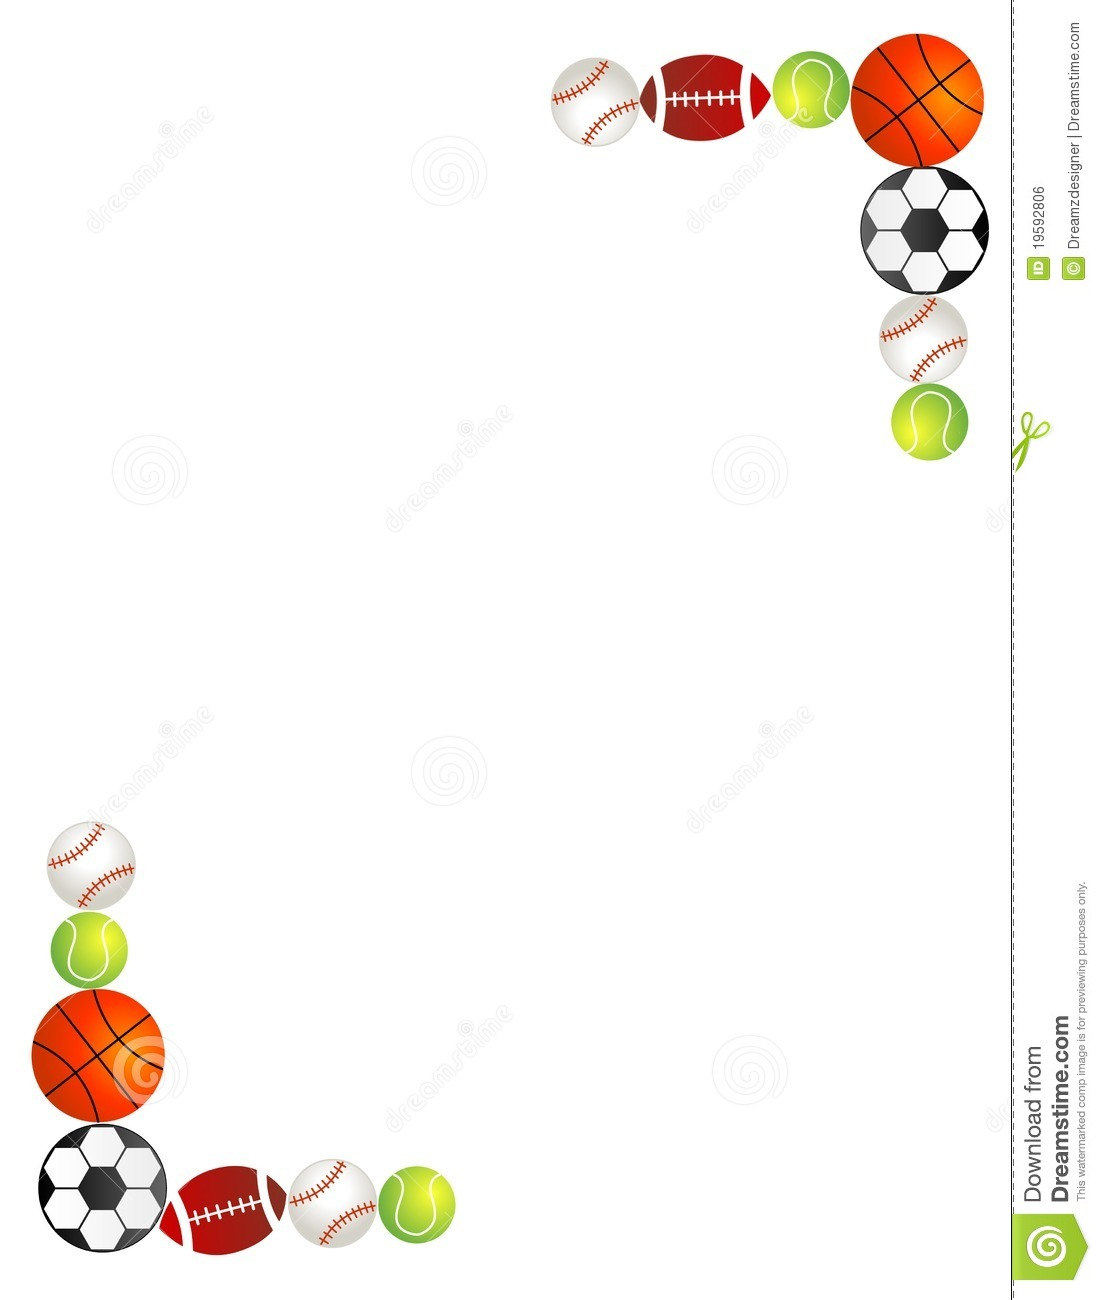 sport balls border frame stock vector illustration of artwork rh dreamstime com sports clip art borders free Sports Clip Art Black and White